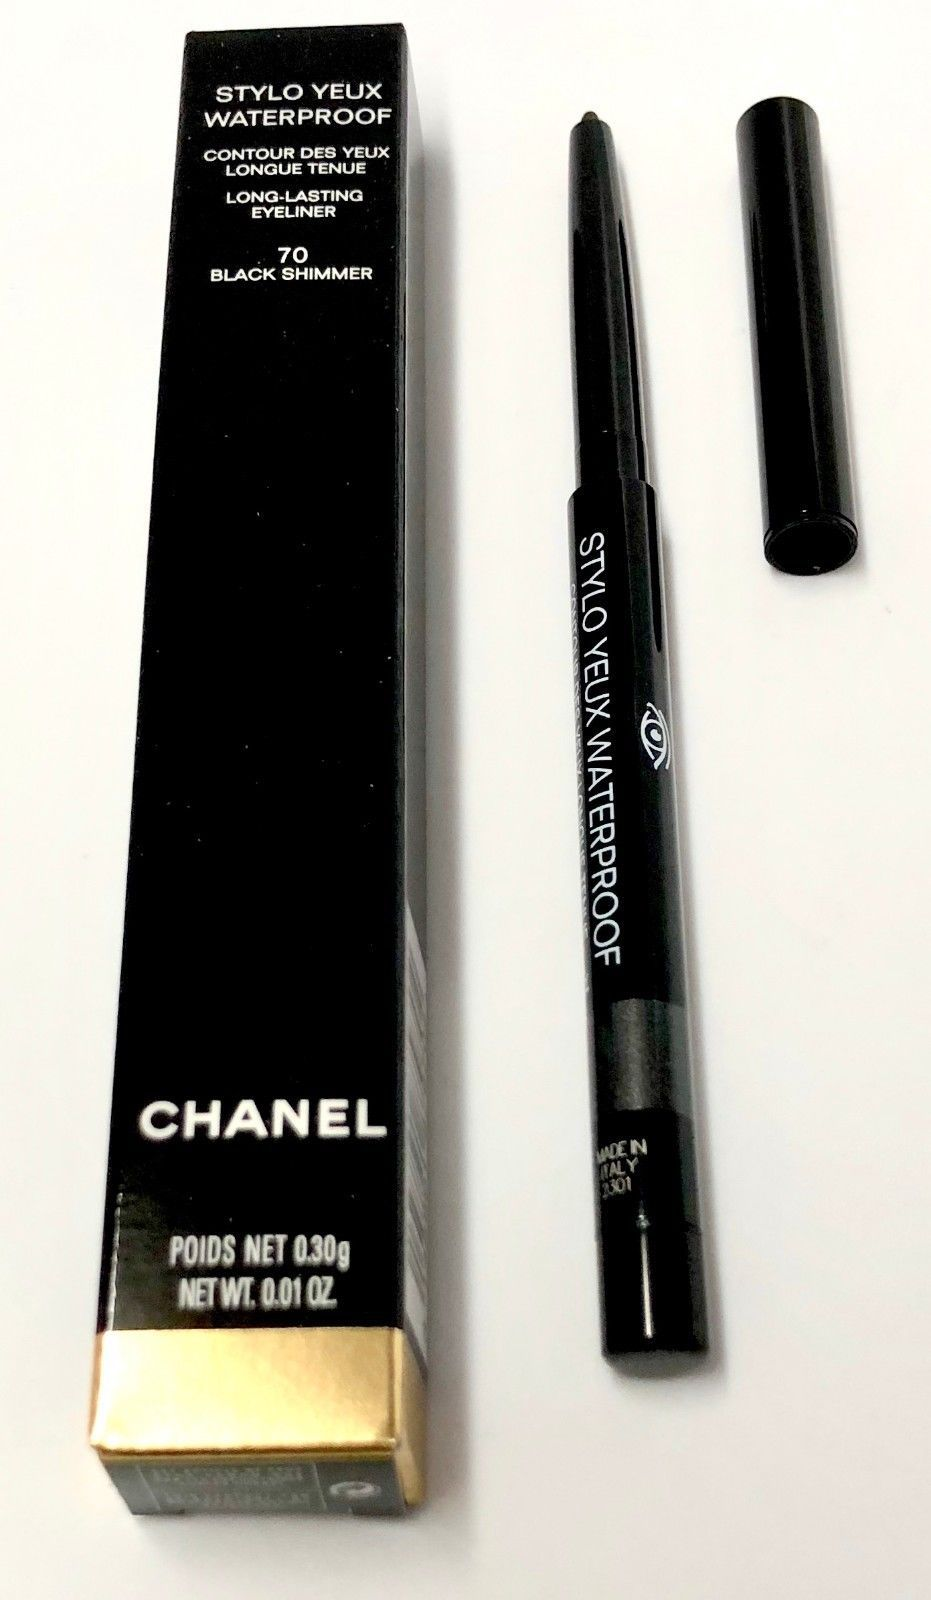 Eyeliner 31787  Chanel Stylo Waterproof Long-Lasting Eyeliner 70 Black  Shimmer 0.01Oz. 0.30G. -  BUY IT NOW ONLY   31 on eBay! 18c25a2210